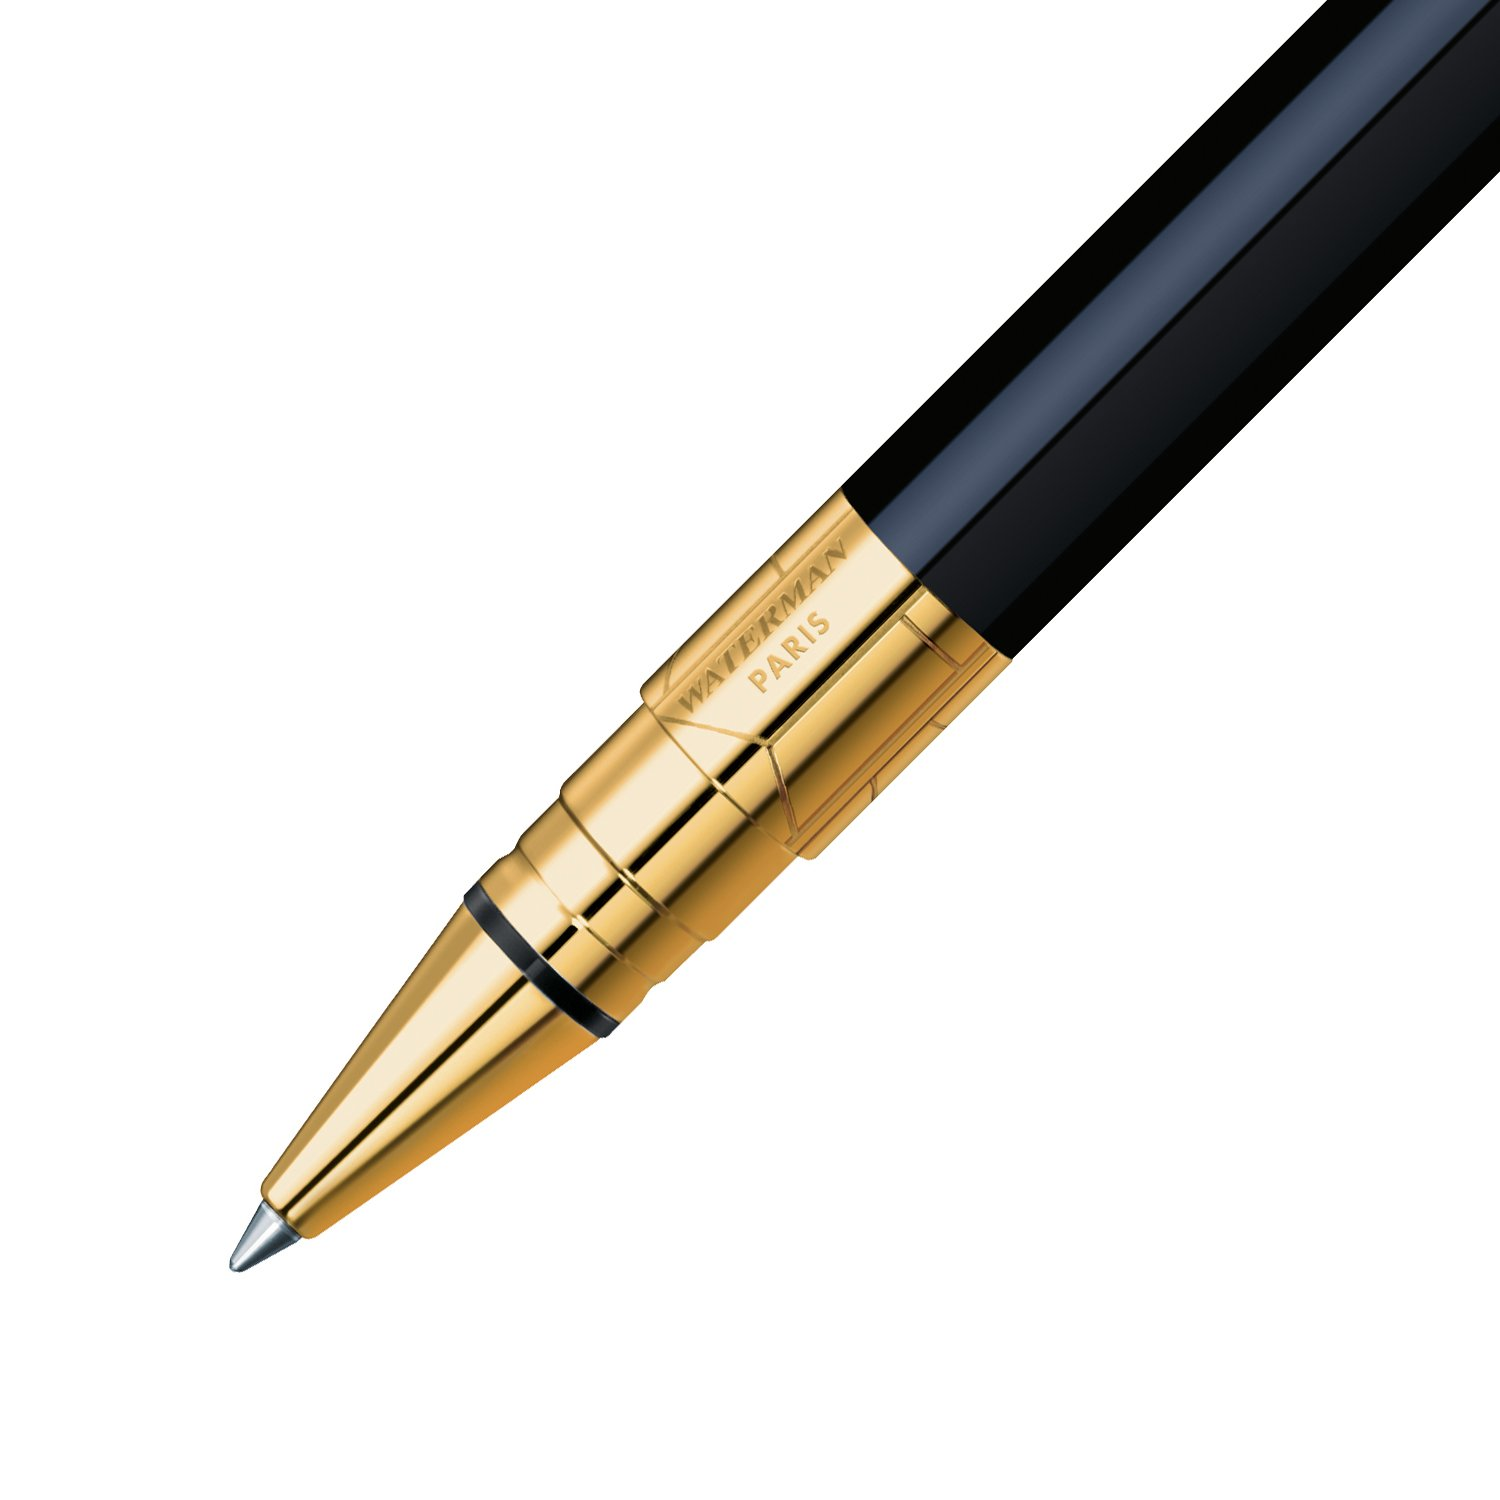 Waterman Perspective Black with Golden Trim, Rollerball pen with Fine Black refill (S0830860) by Waterman (Image #4)